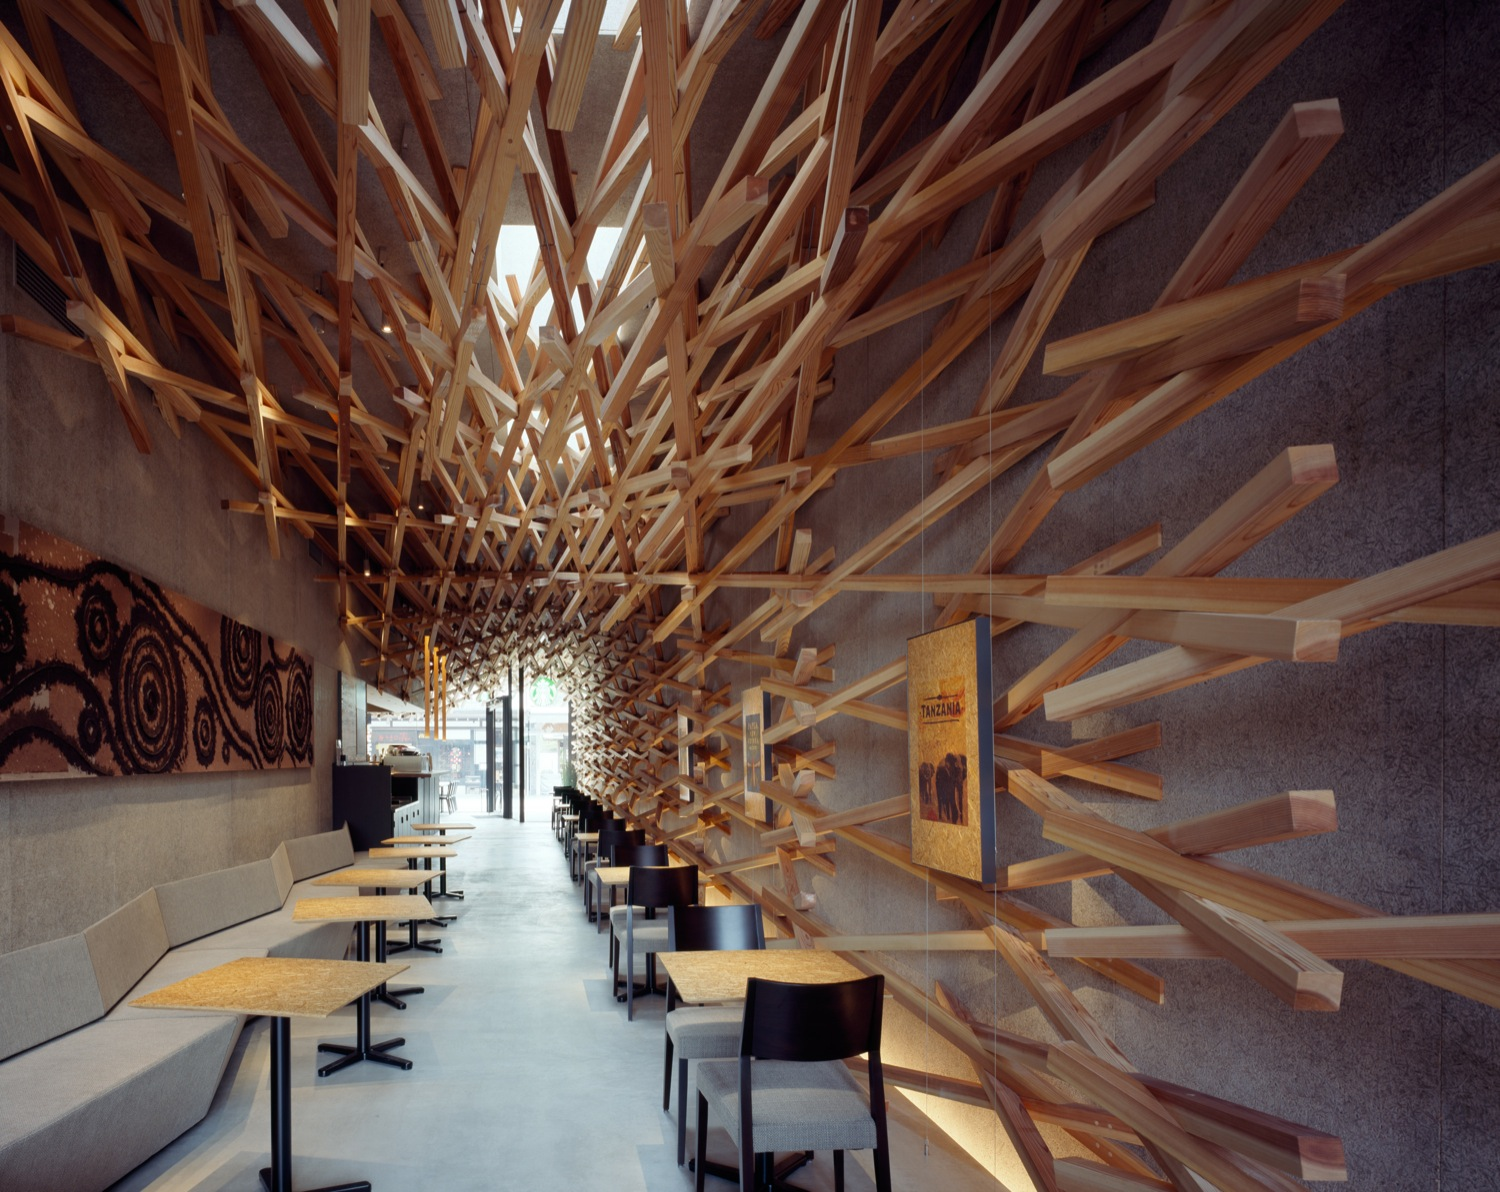 ARTICLE: Proof That Sustainable Design And Build Methodologies Are Part O Starbucks' DNA. | CLICK TO READ... http://carlaaston.com/designed/proof-starbucks-honors-values-great-design-architecture